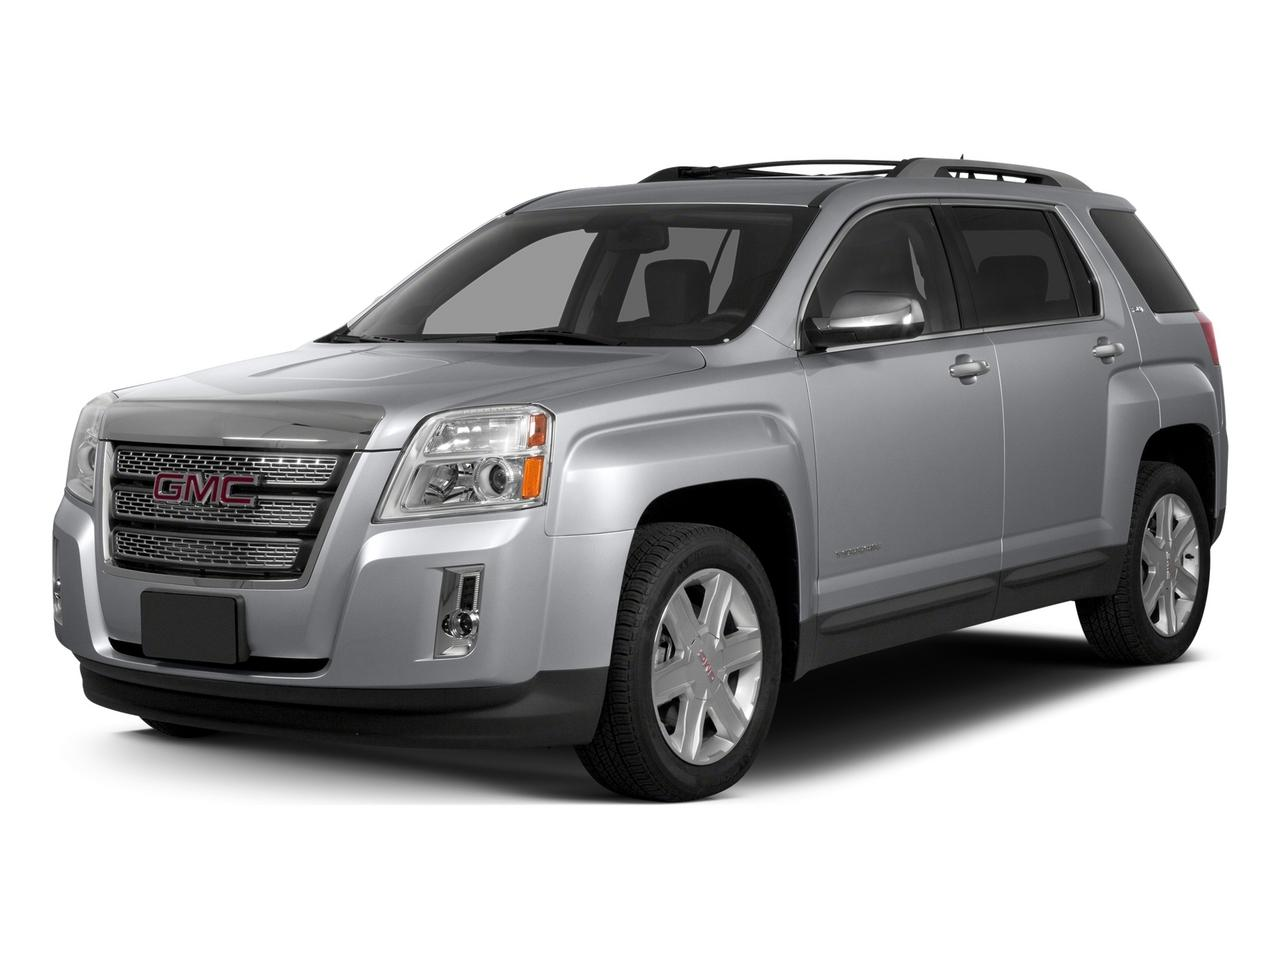 2015 GMC Terrain Vehicle Photo in Vincennes, IN 47591